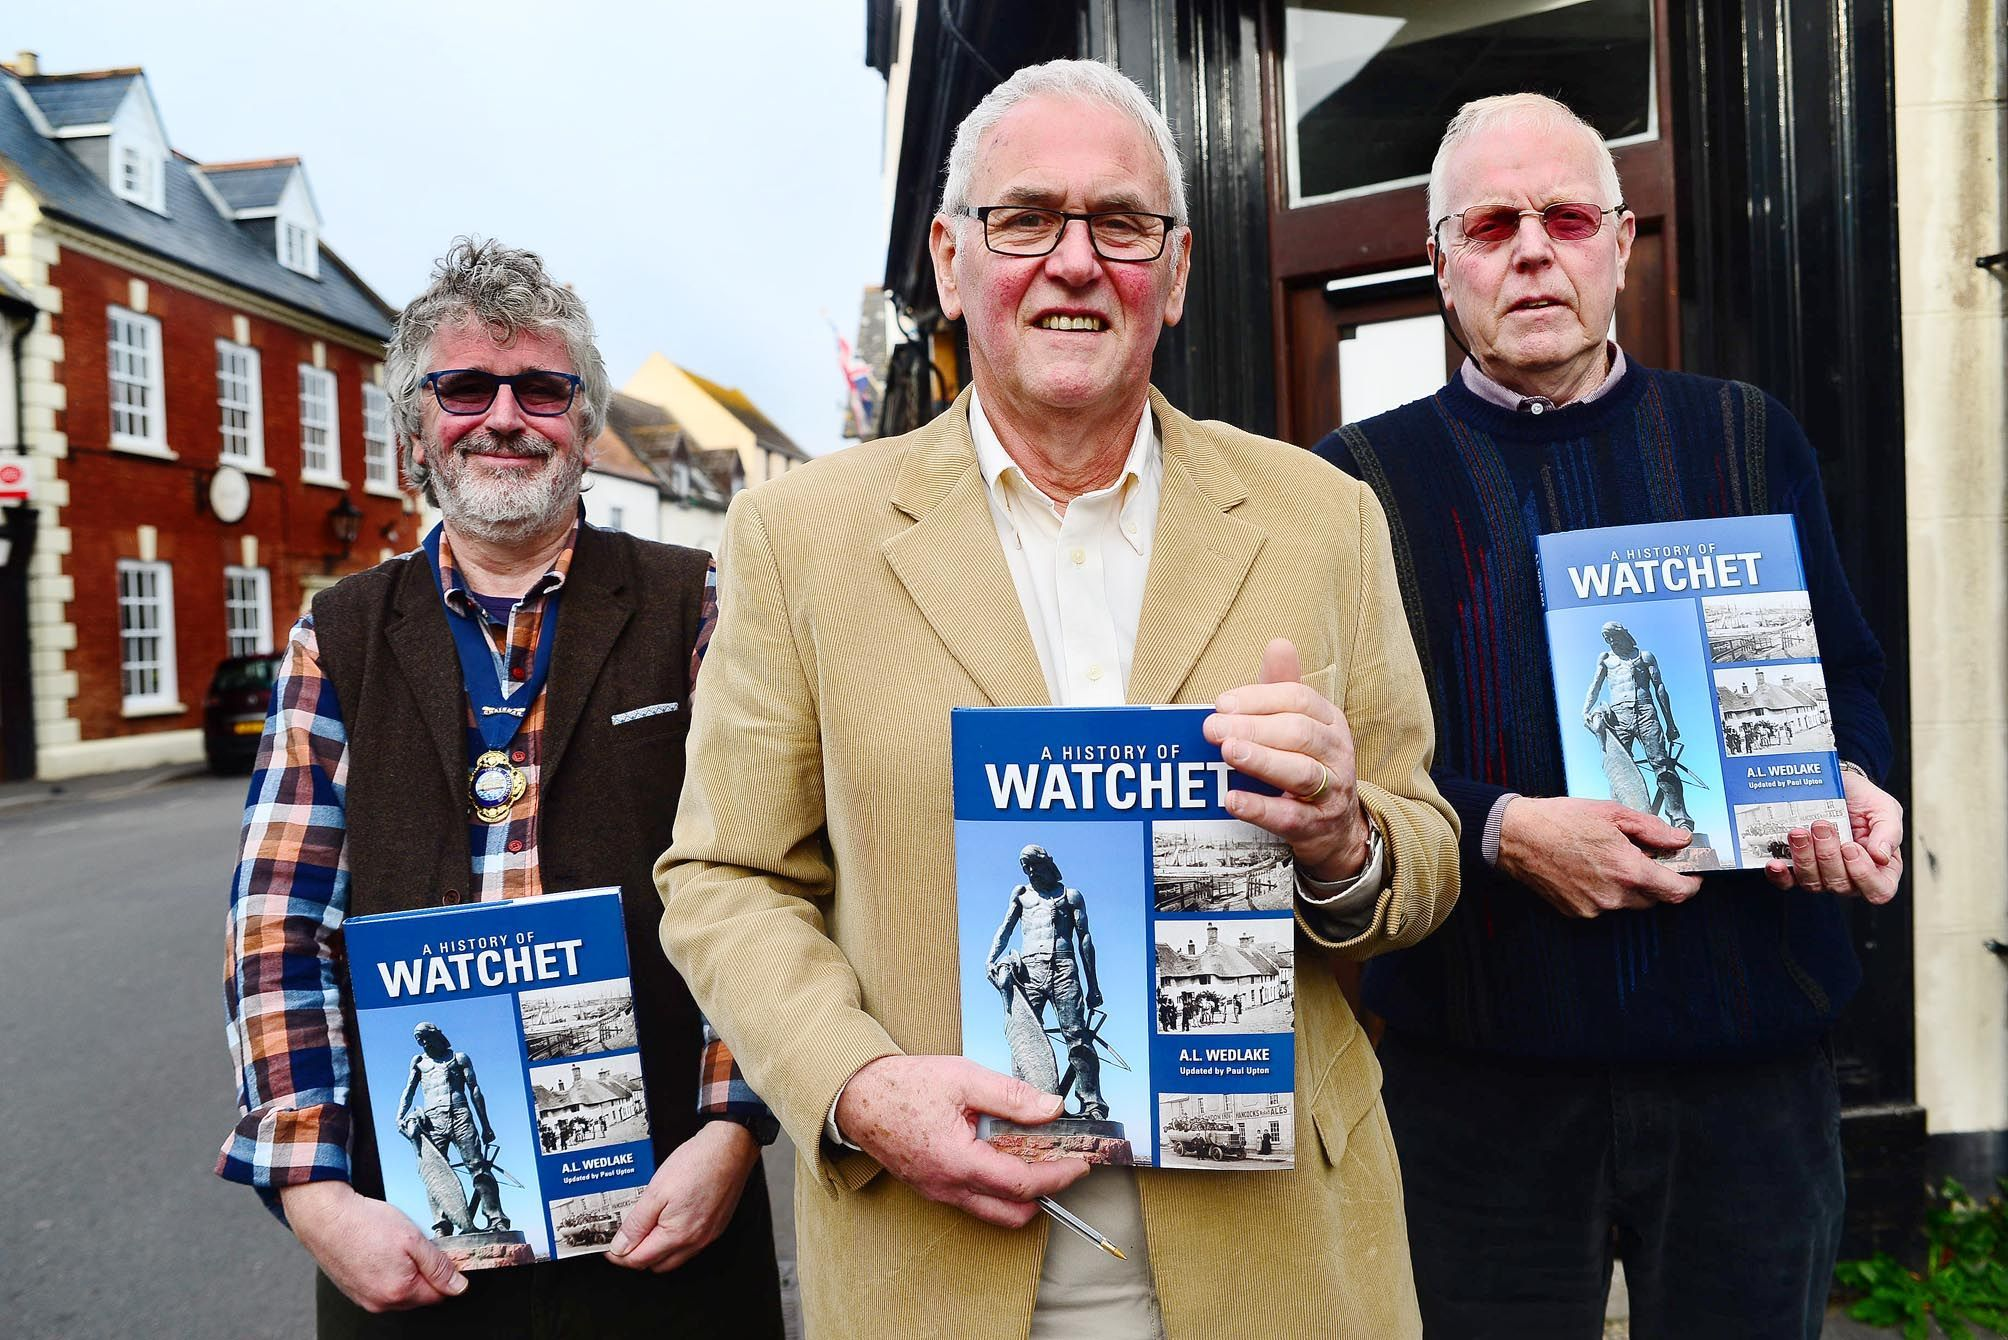 BOOK LAUNCH: Peter Murphy, mayor of Watchet, author Paul Upton and Jim Nicholas, curator of Watchet Market House Museum